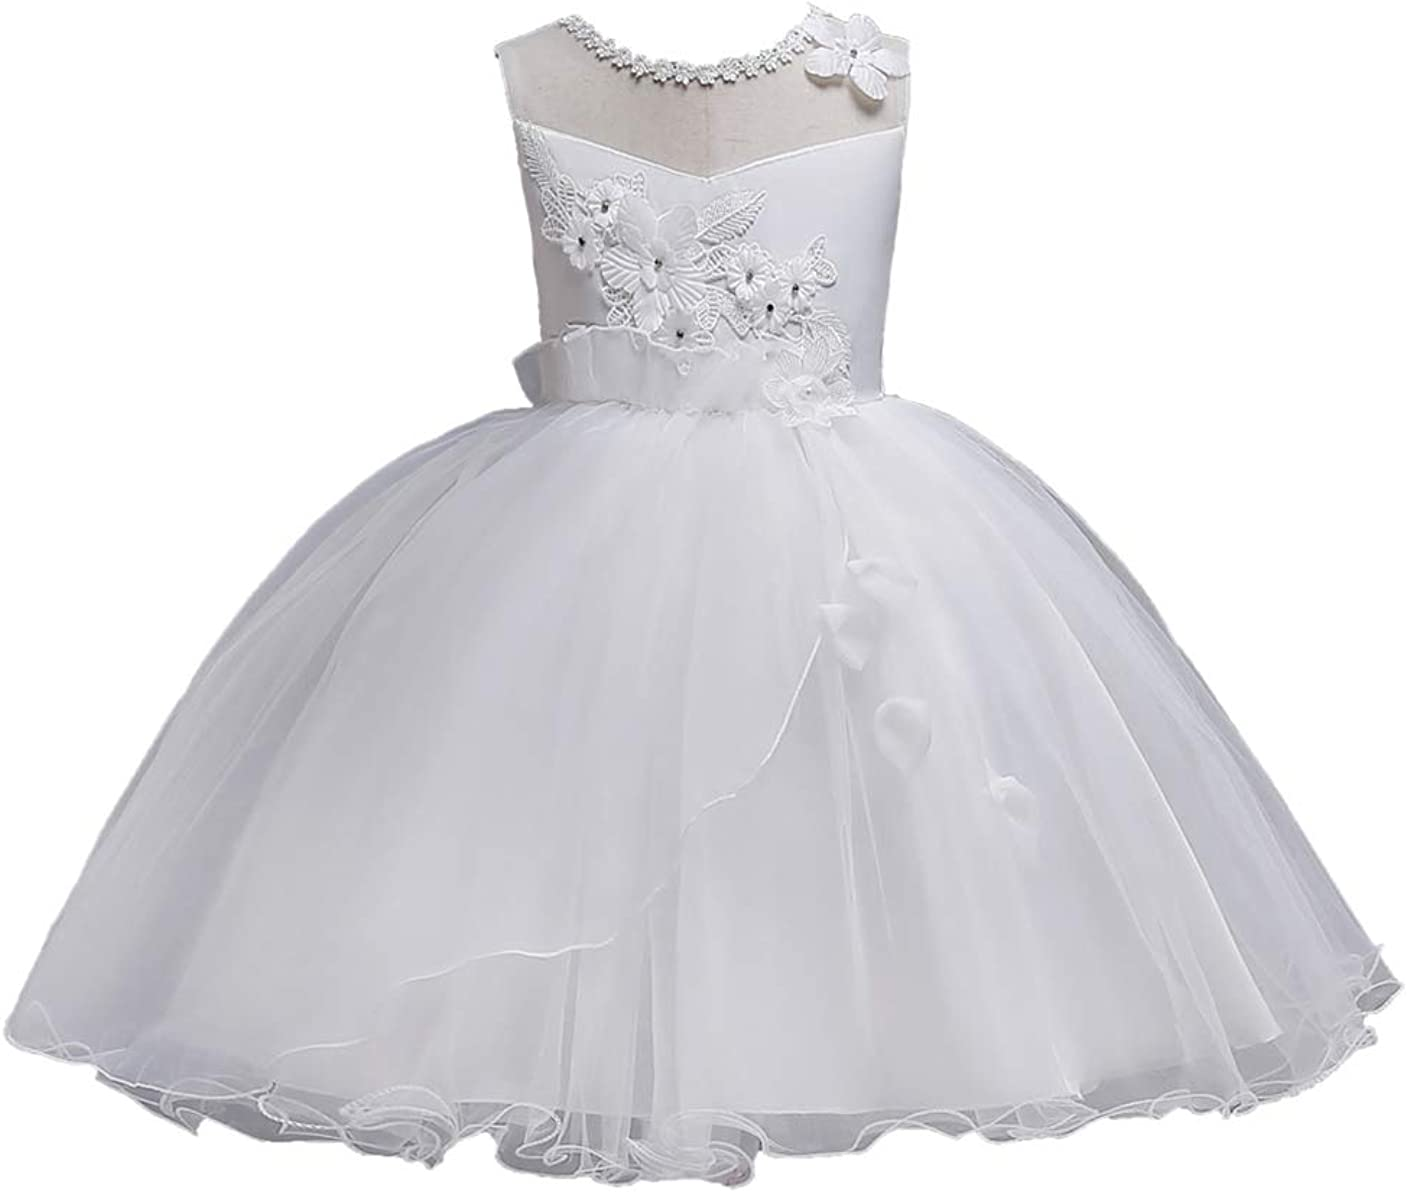 GRASWE Toddler Girls Formal Party Dress Kids Pageant Flower Wedding Ball Gown